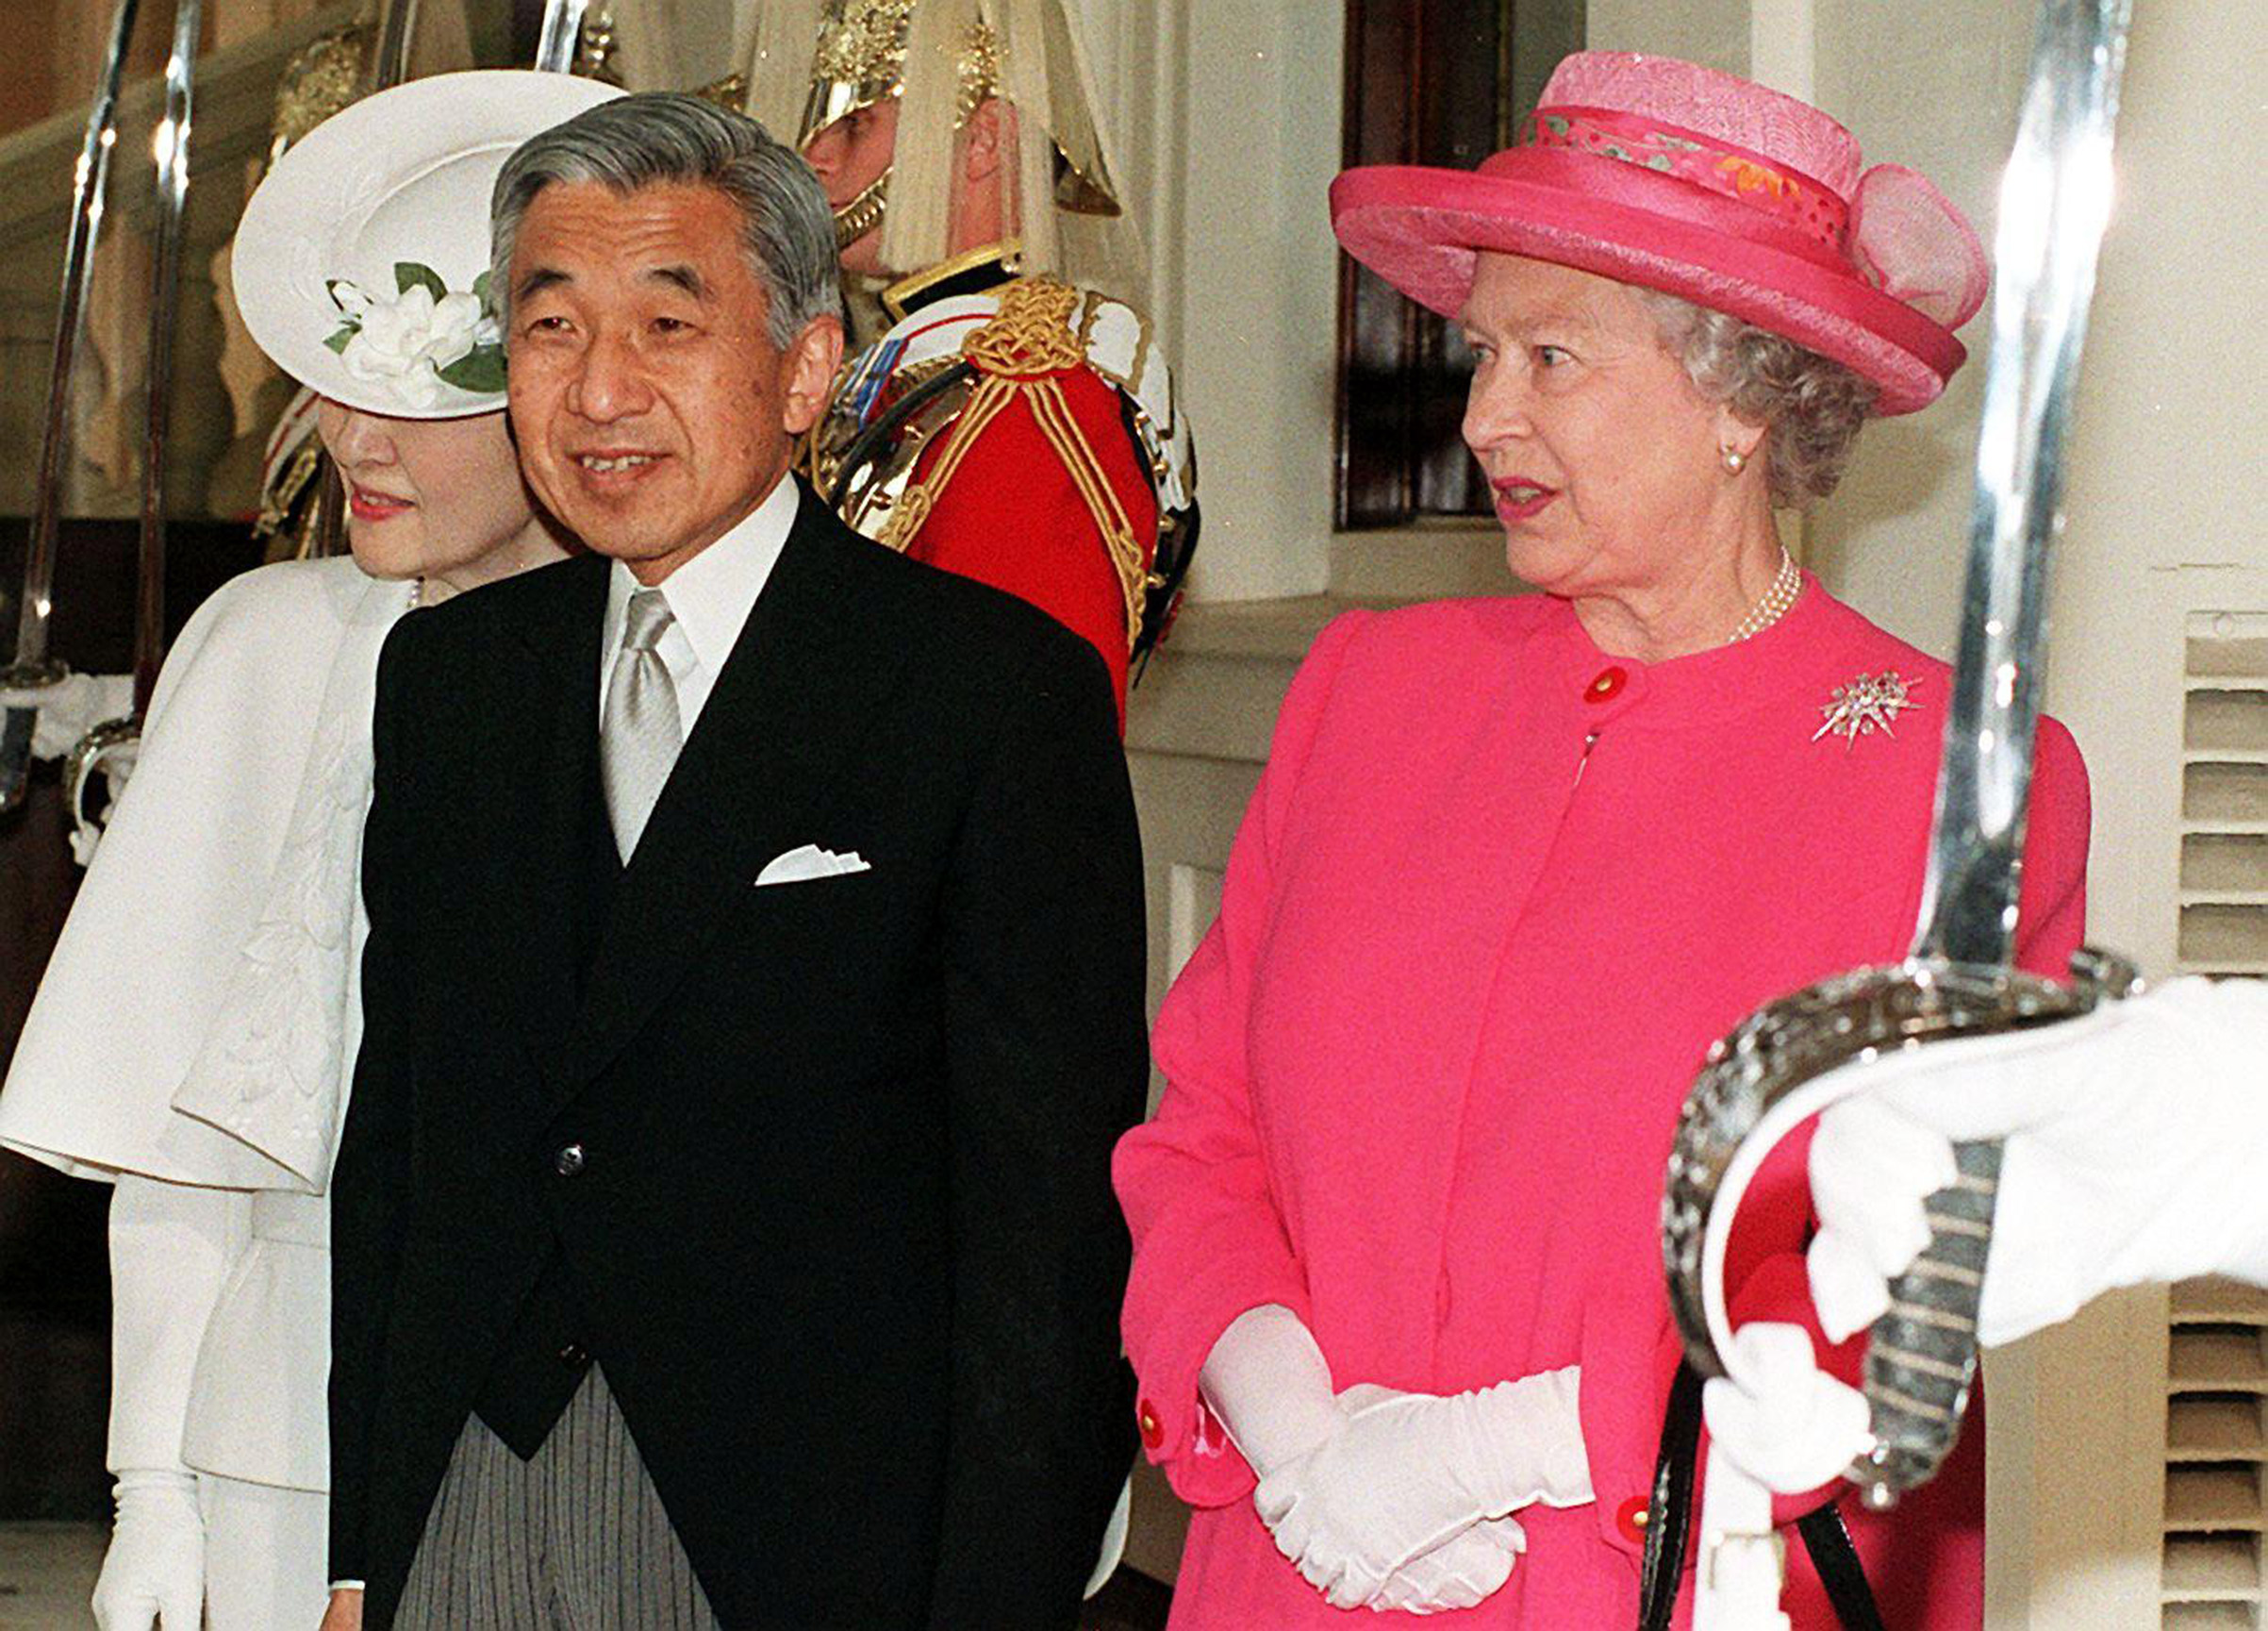 Queen Elizabeth II welcomes the Japanese Emperor Akihito and Empress Michiko to Buckingham Palace on May 26, 1998.